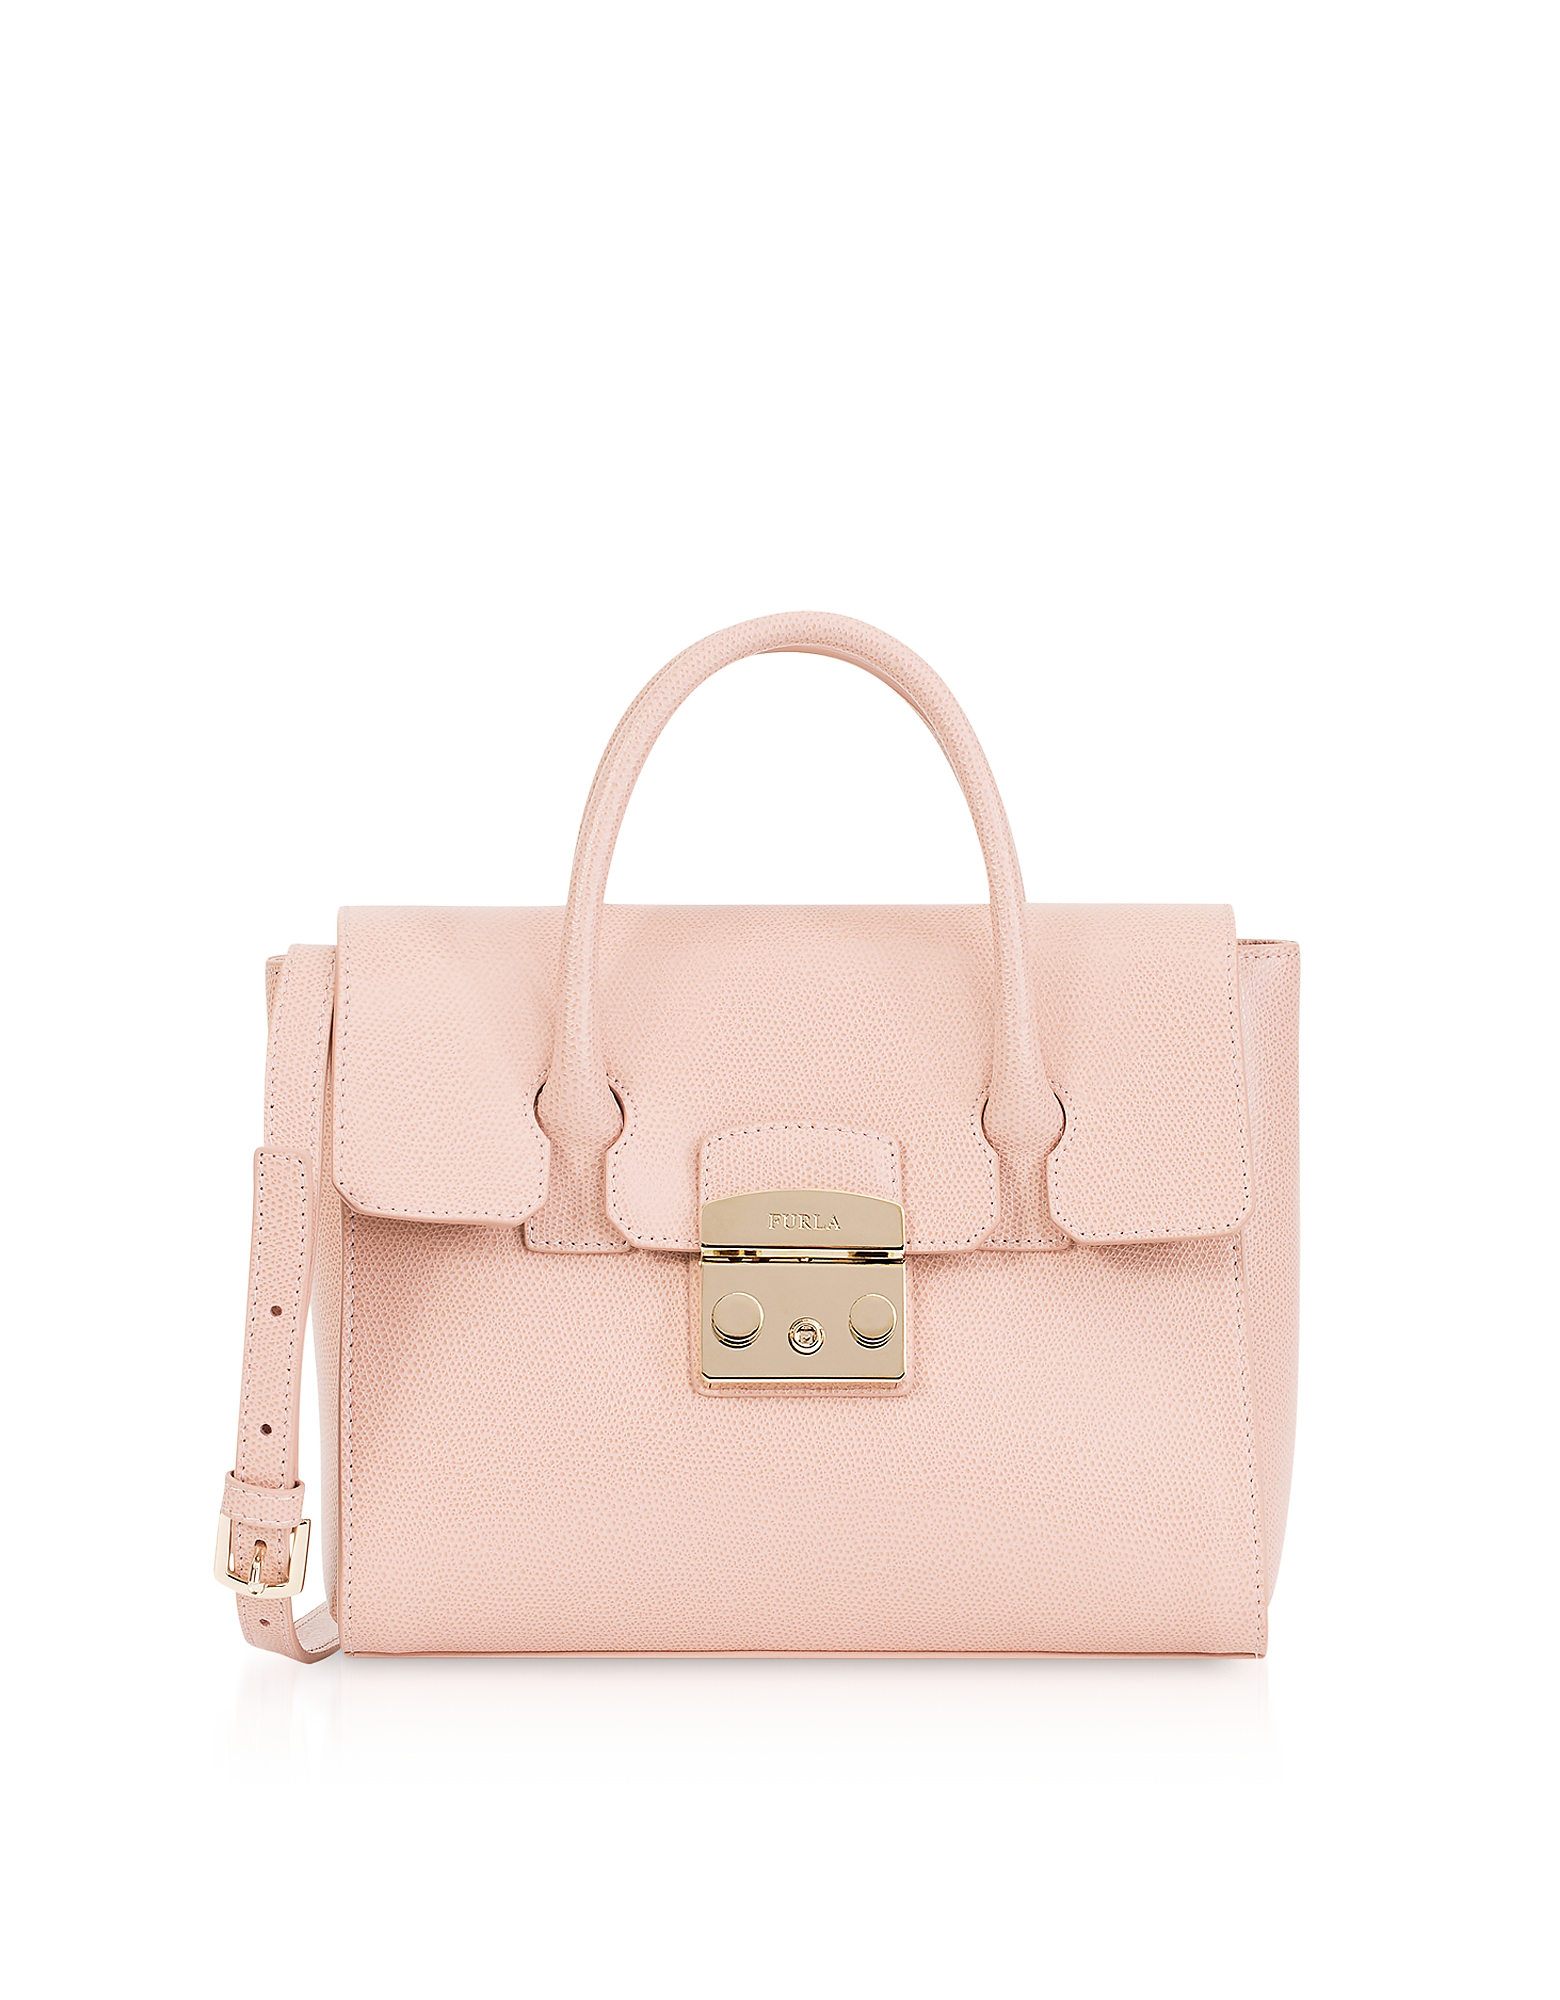 Furla Handbags, Moonstone Leather Metropolis S Satchel Bag